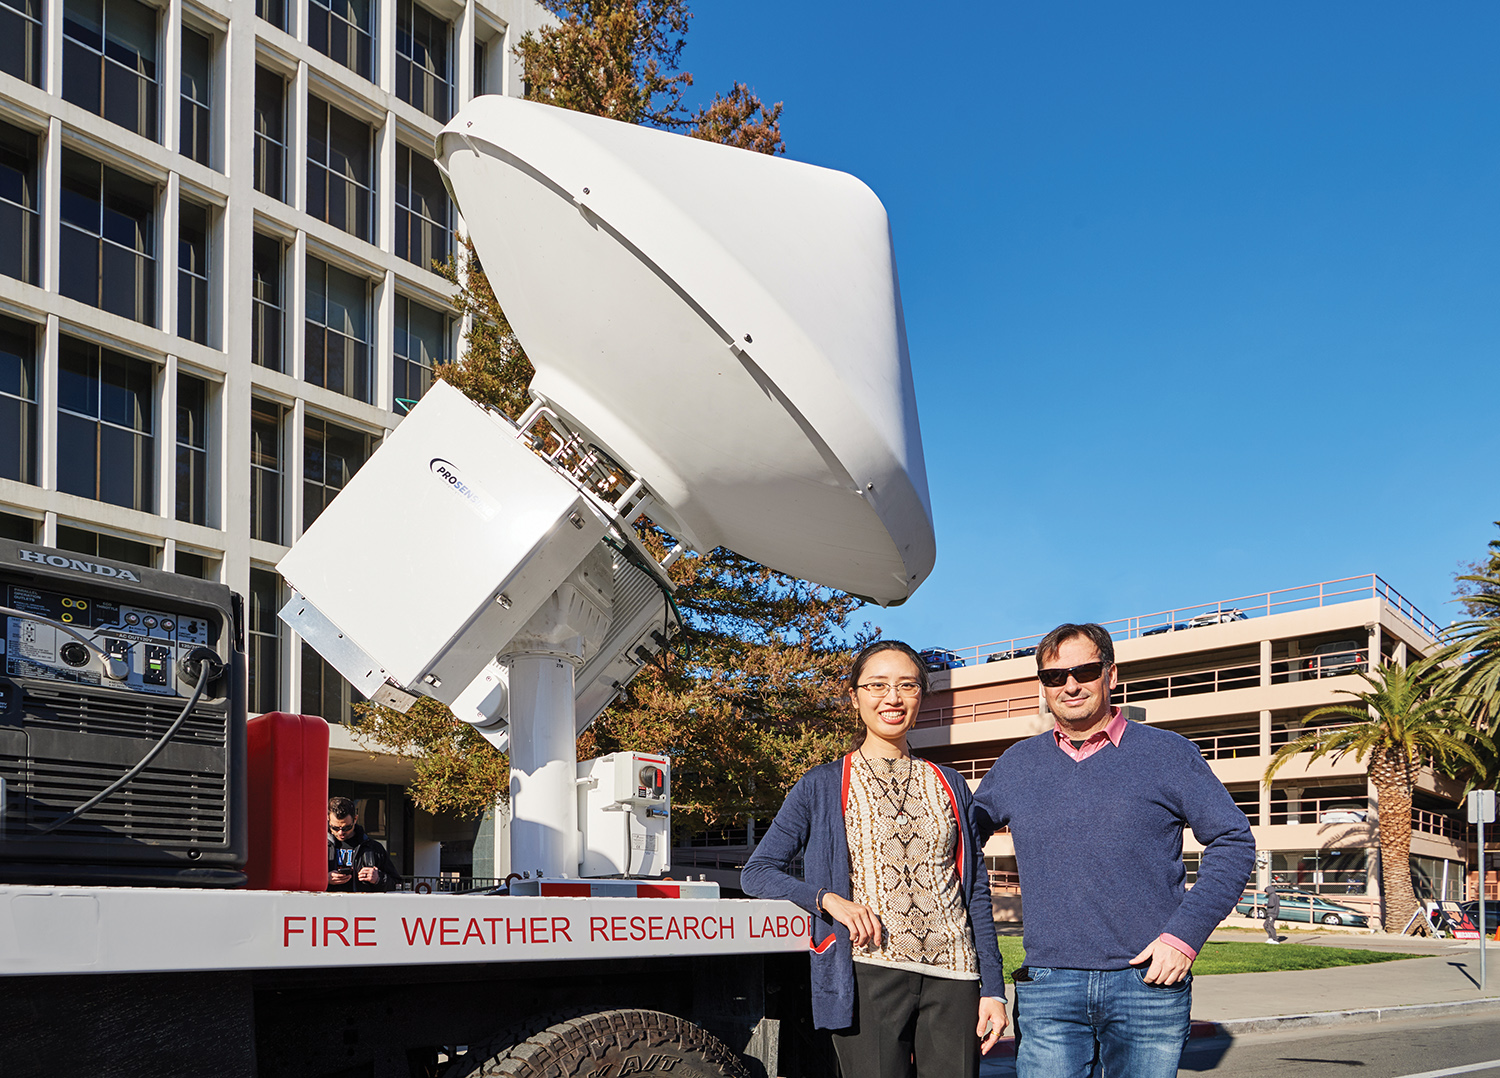 doppler radar in fire weather research truck